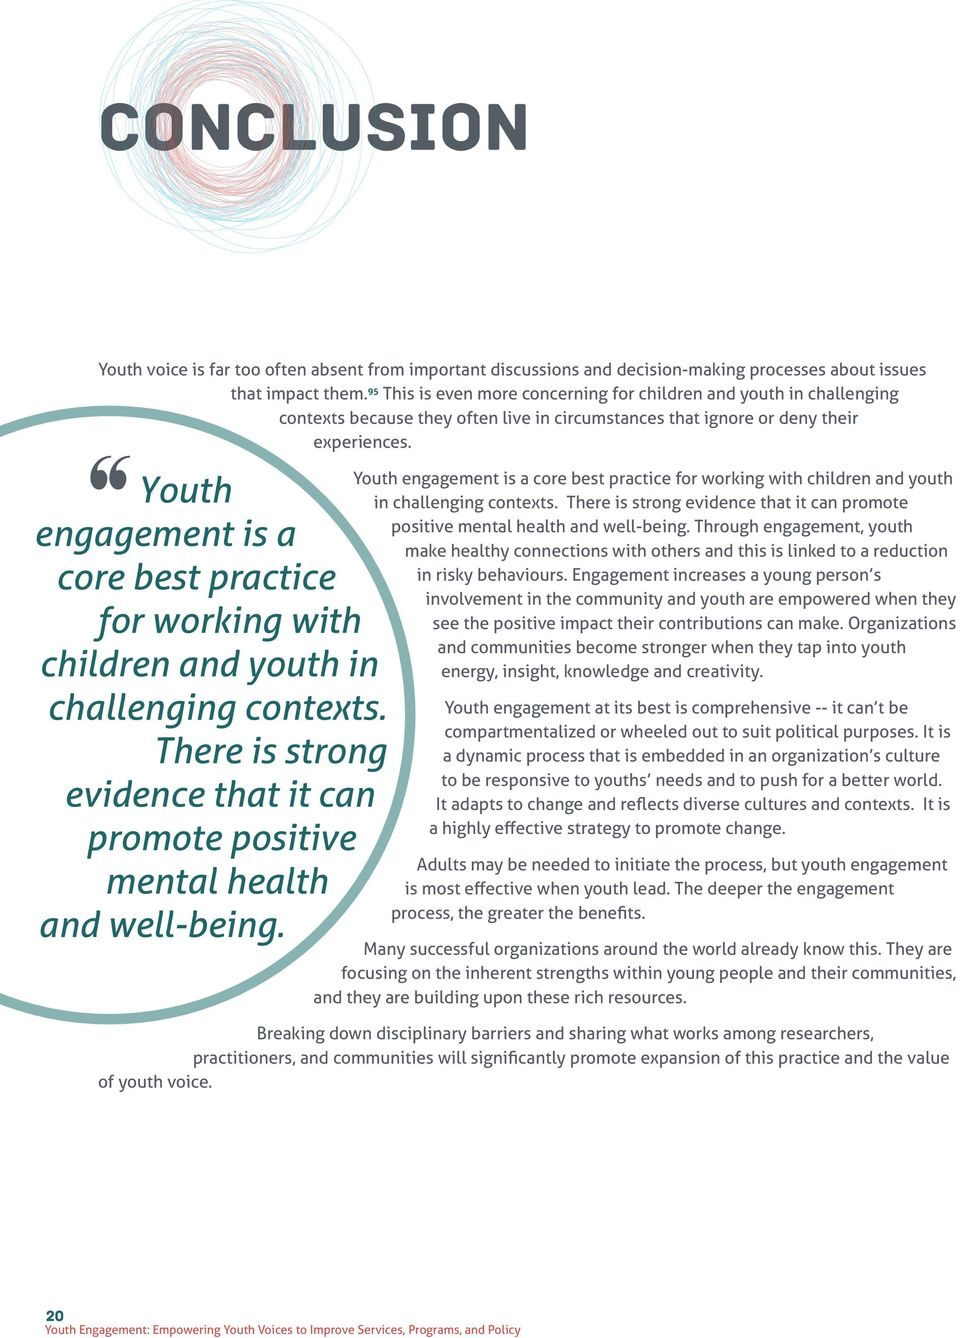 Youth engagement is a core best practice for working with children and youth in challenging contexts. There is strong evidence that it can promote positive mental health and well-being.